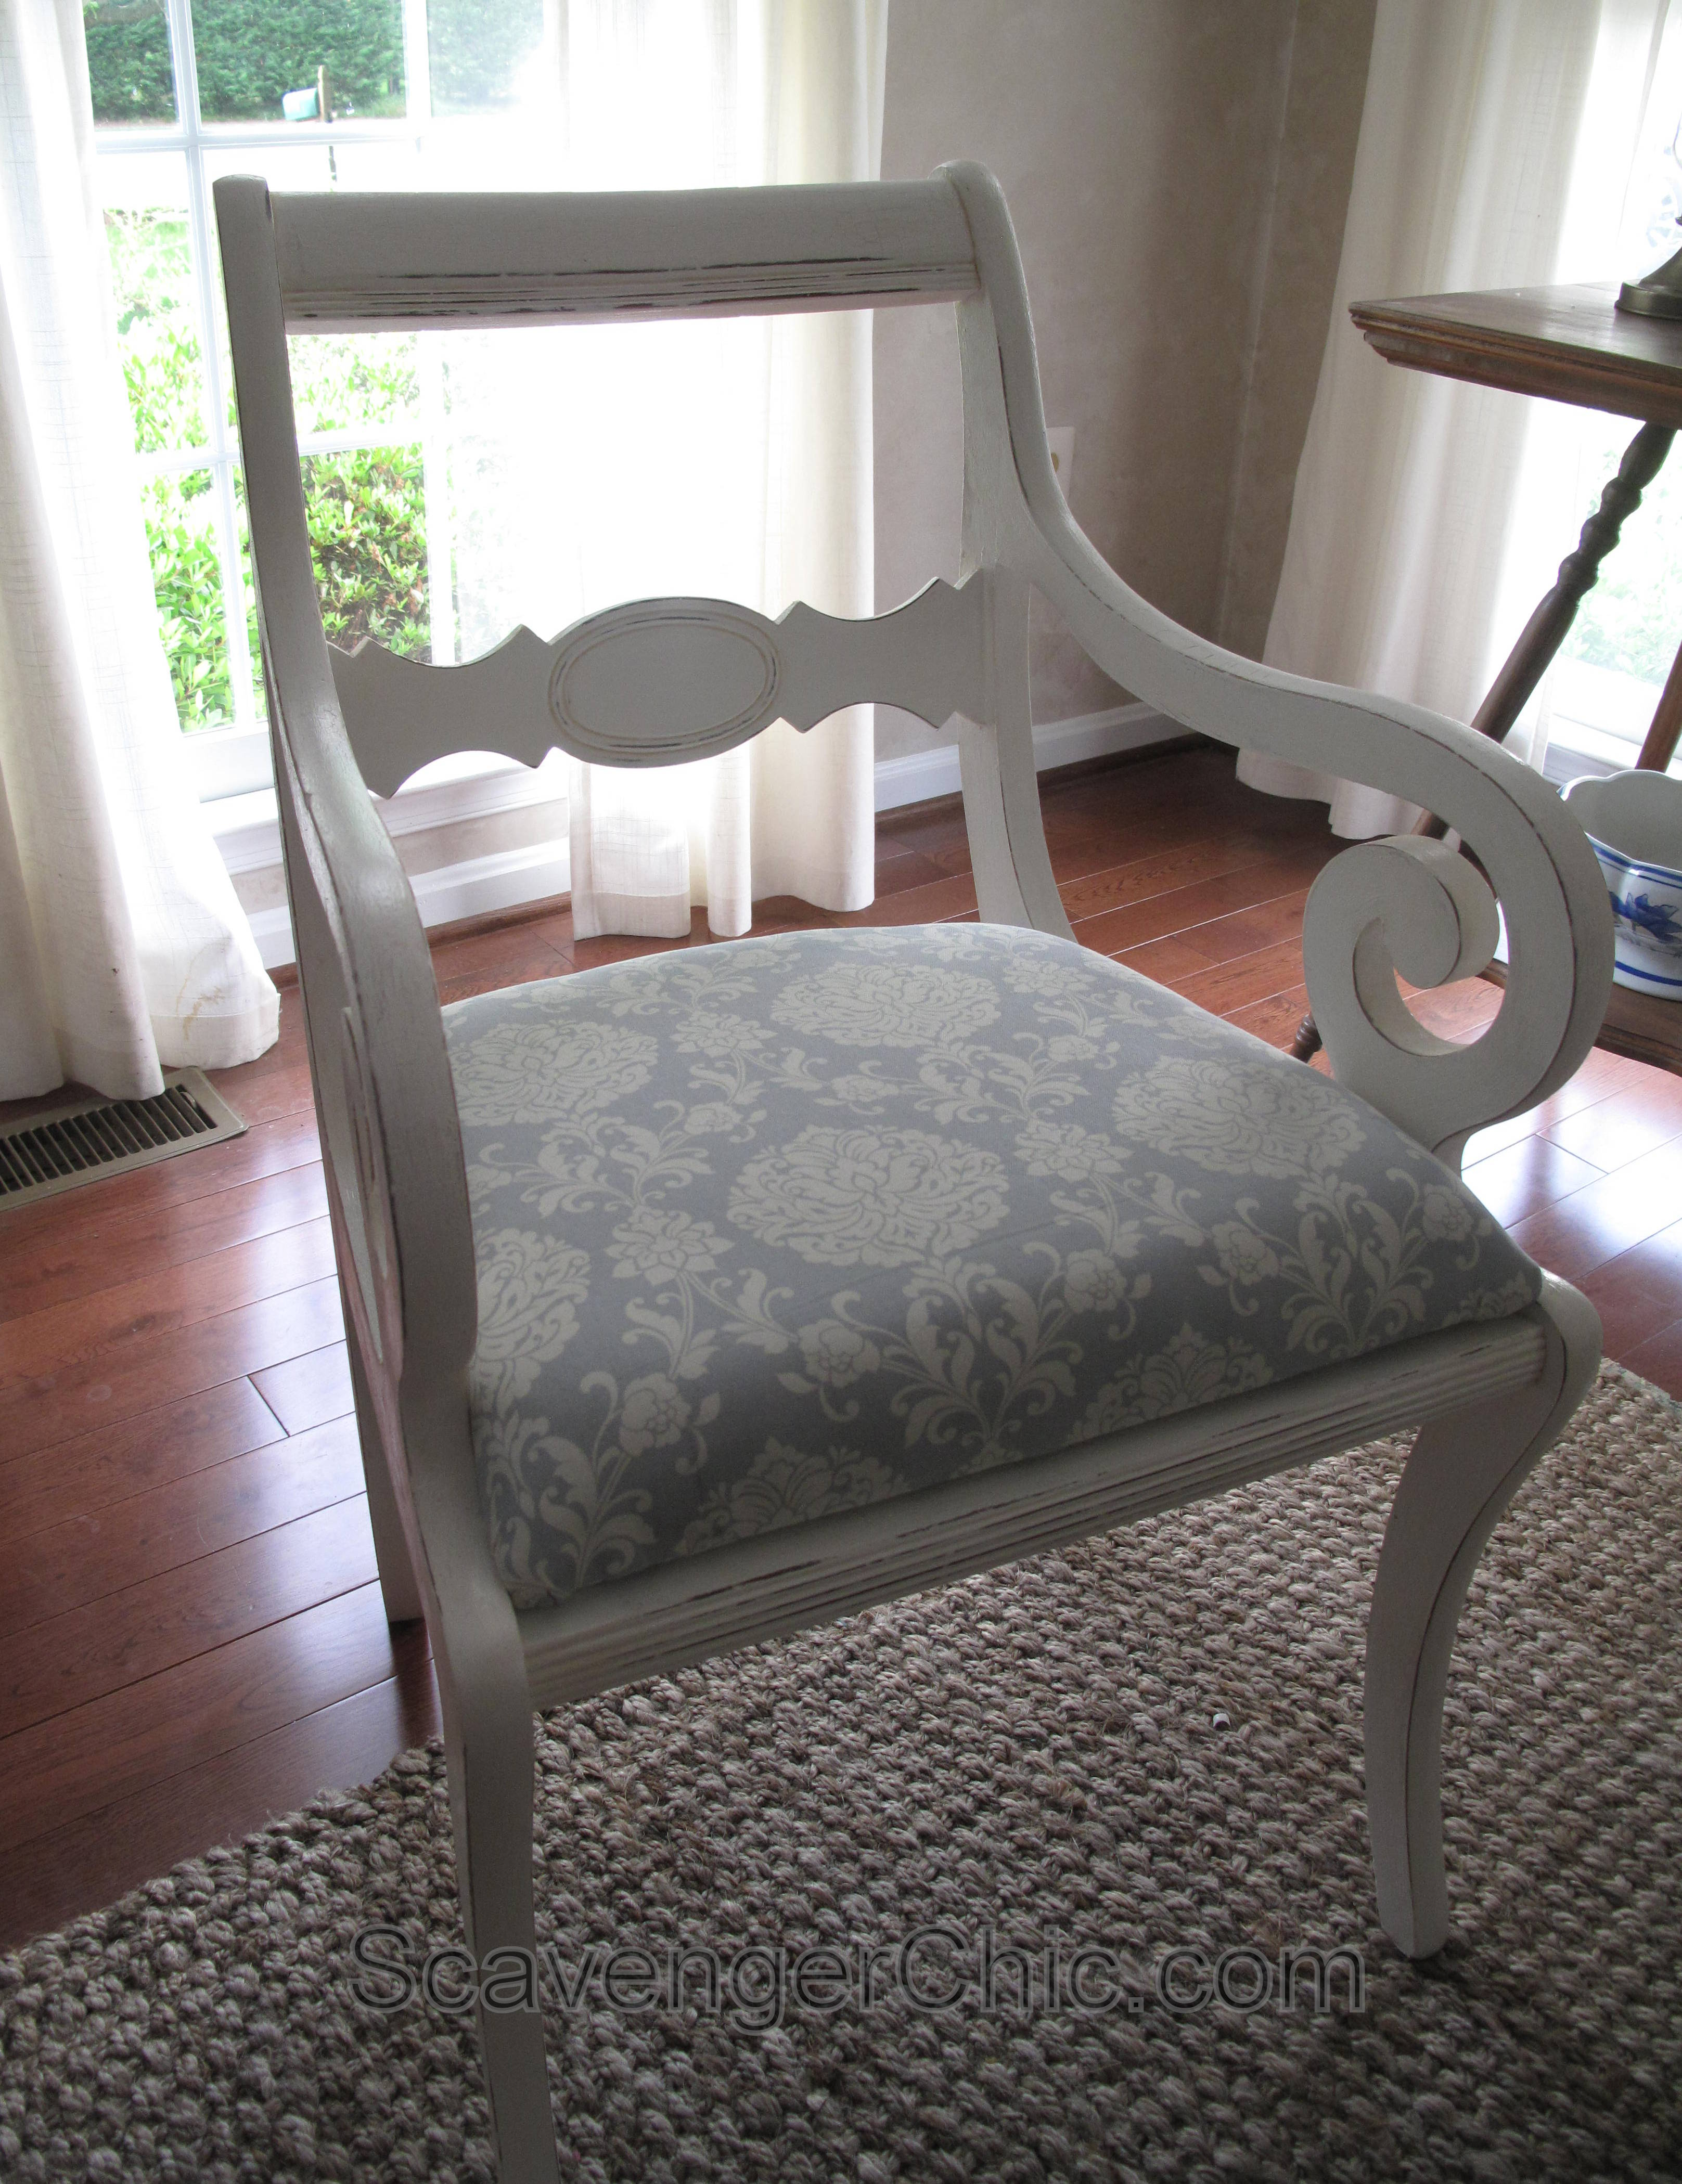 Upholstering a Dining Room Chair  Scavenger Chic